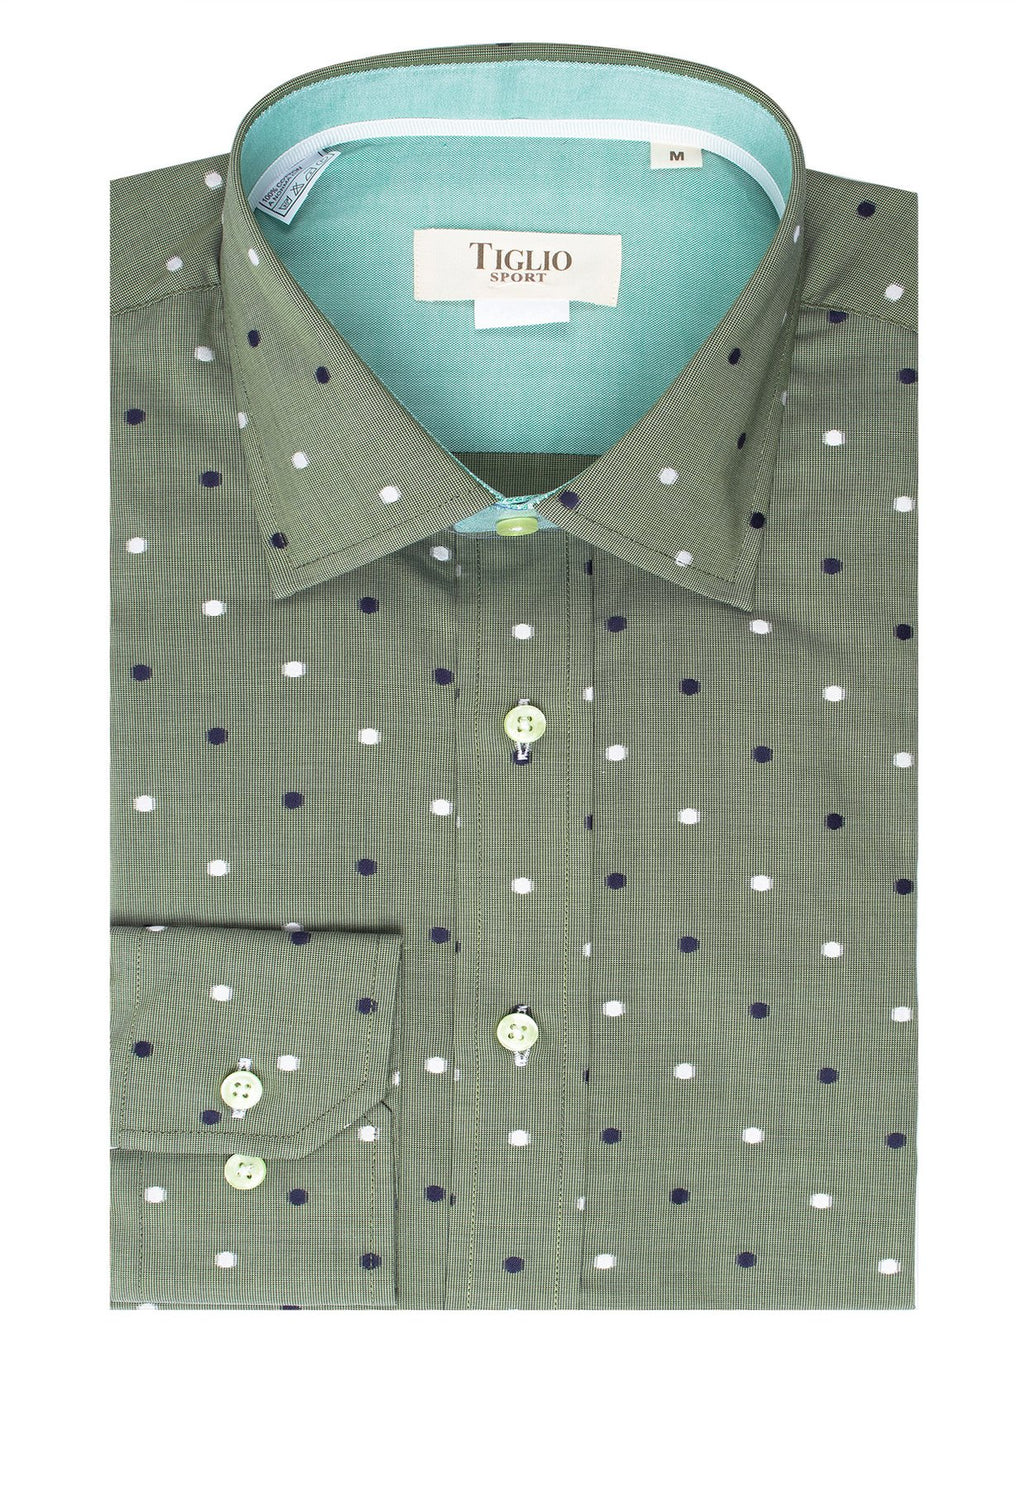 Tiglio Sport Green with Navy and White Polka-Dot Pattern Modern Fit Sport Shirt V43100